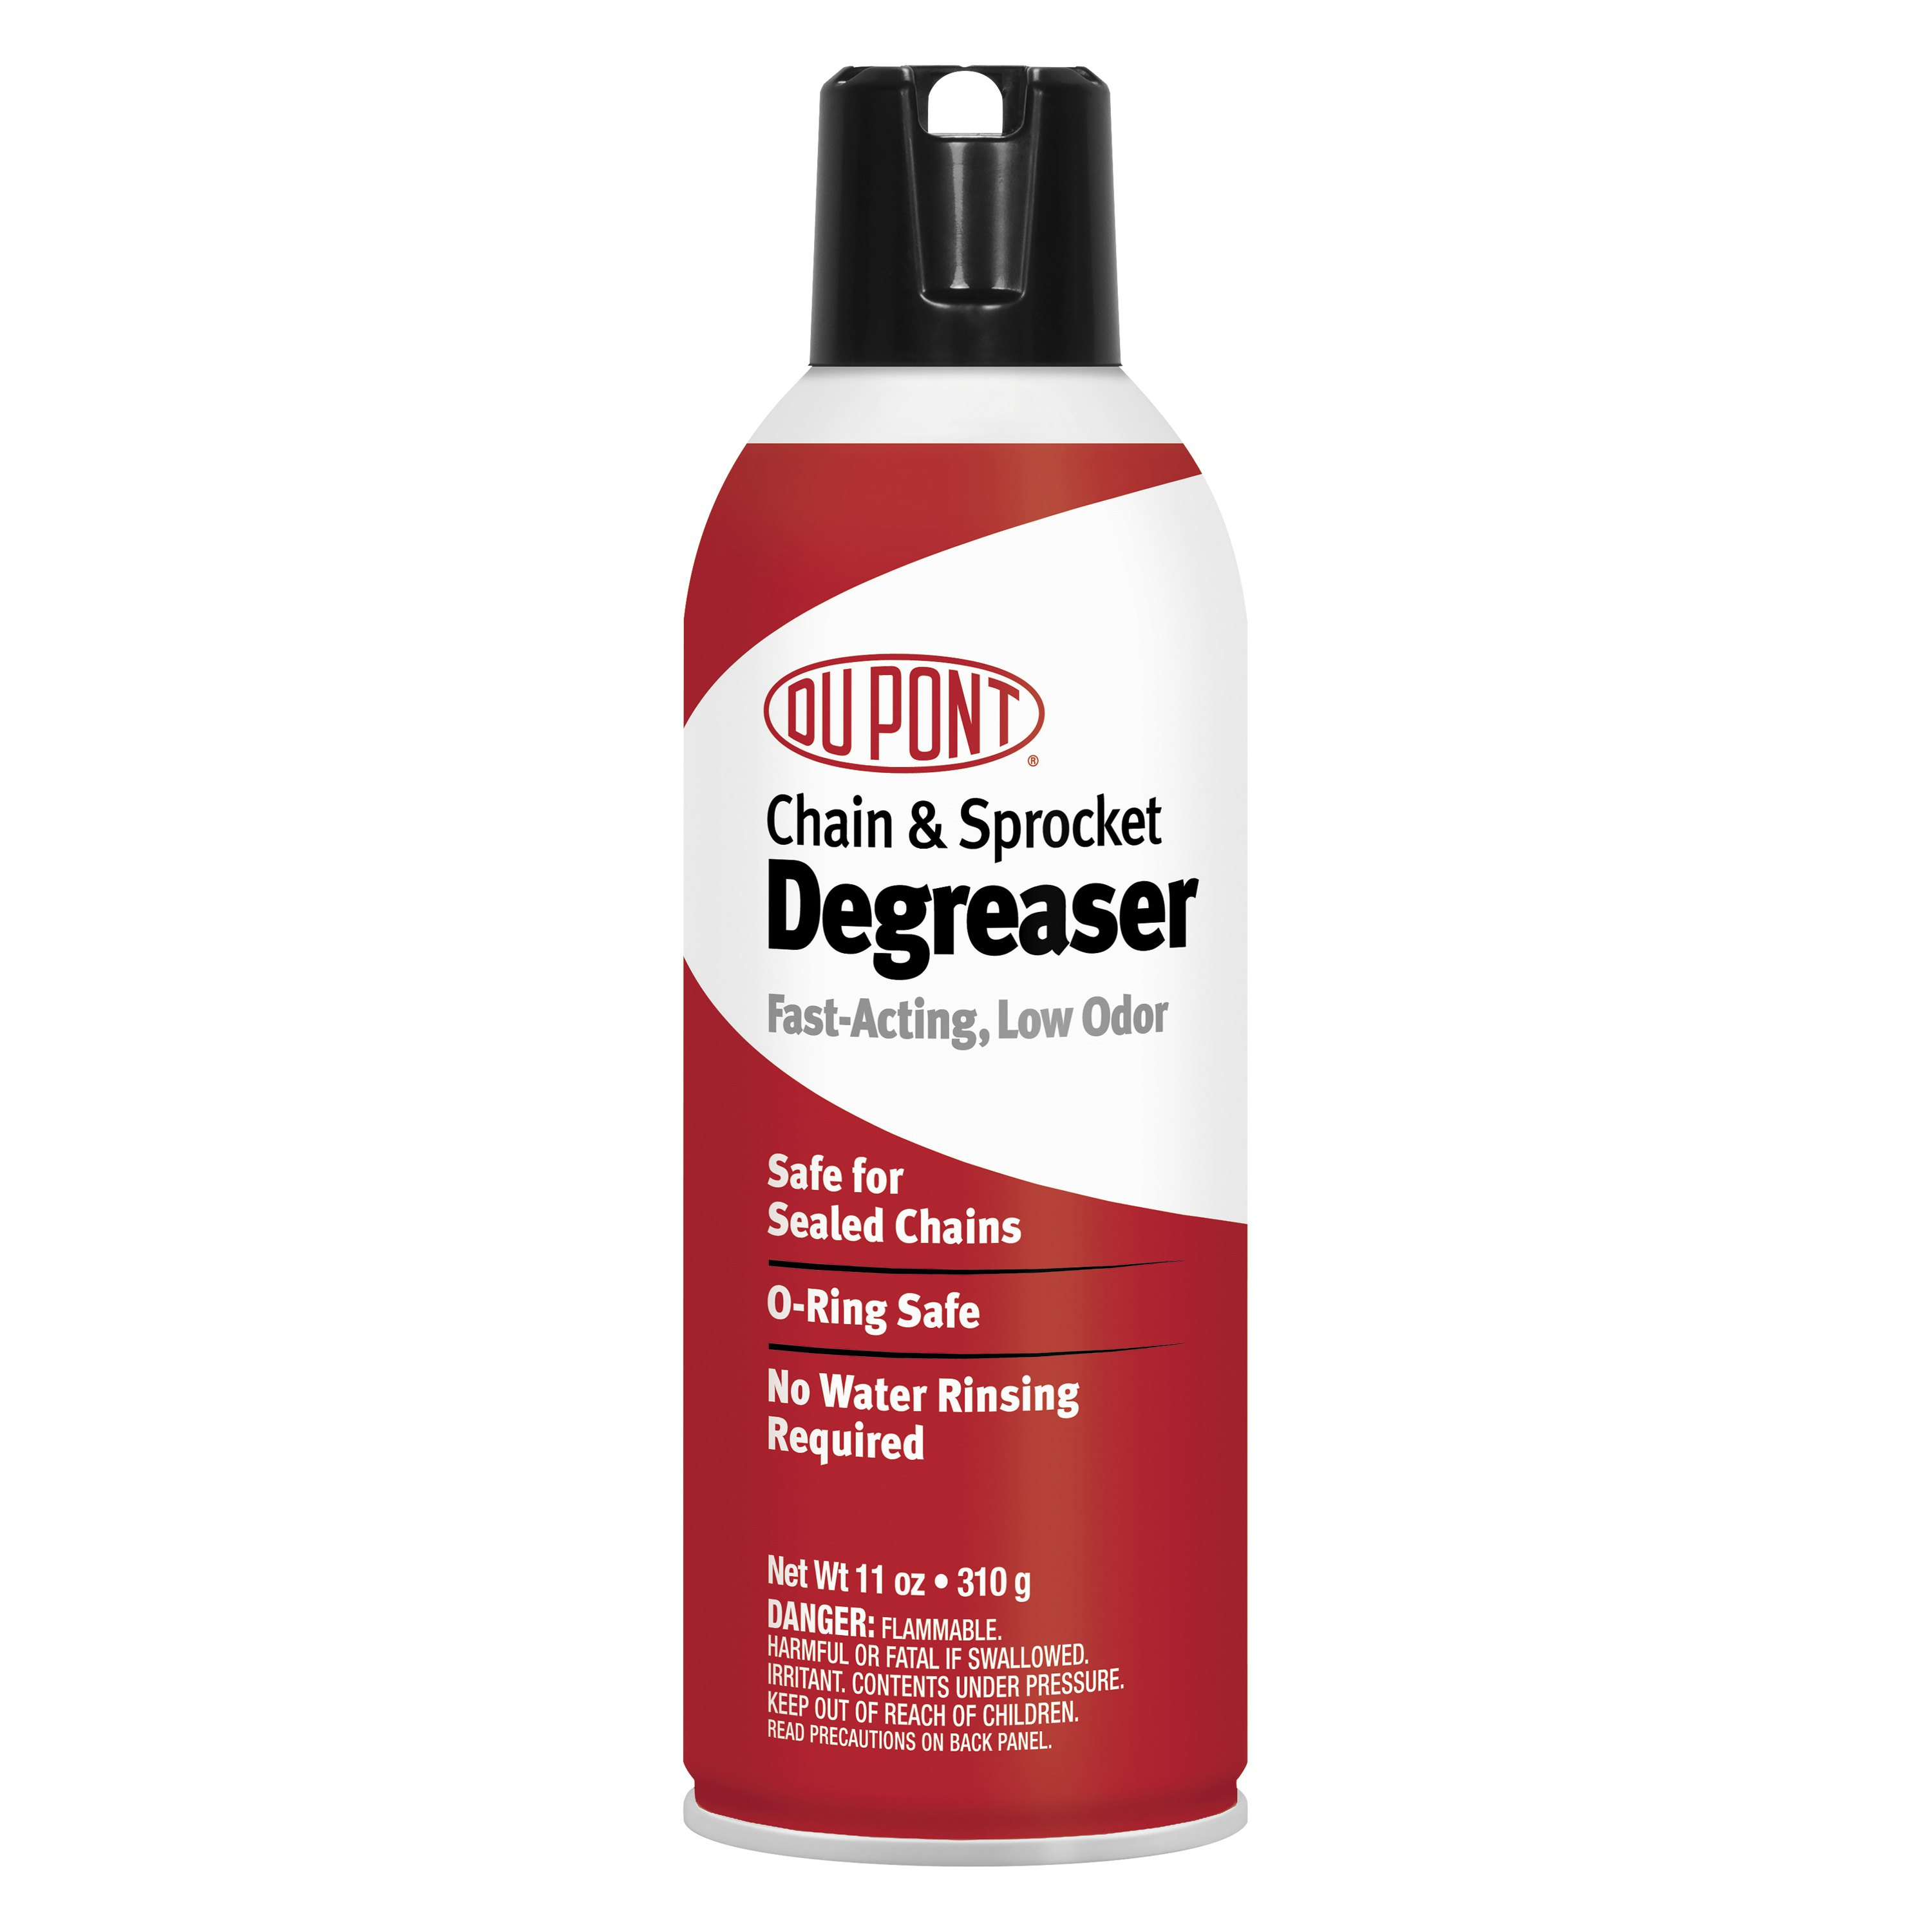 11 oz chain and sprocket degreaser pack